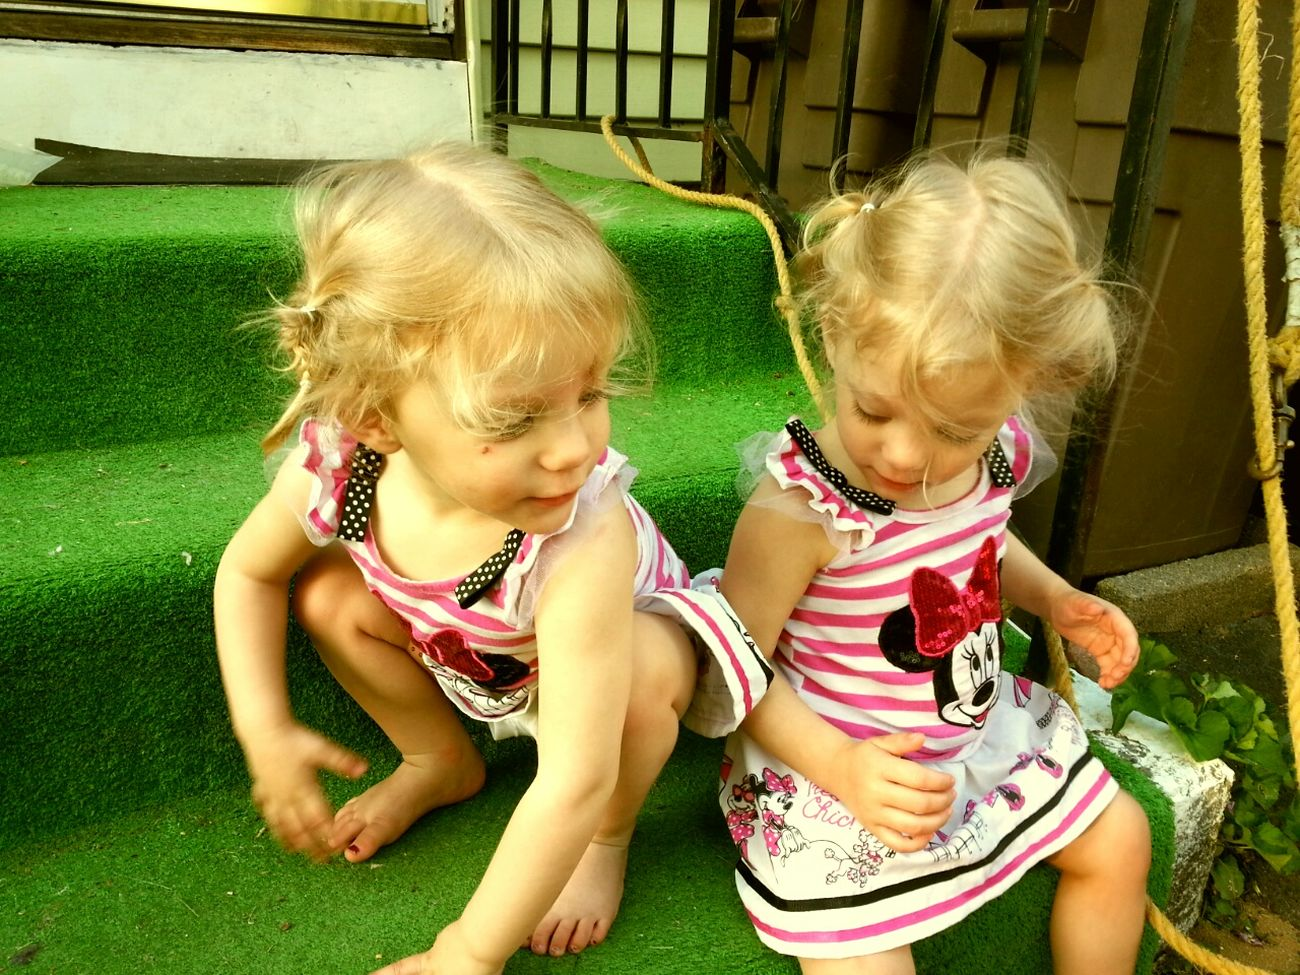 Love These Girls My Granddaughters Twins My Life Twinsies! Twin Love Sisters Love Is Life♥ Family Love  My World ♥